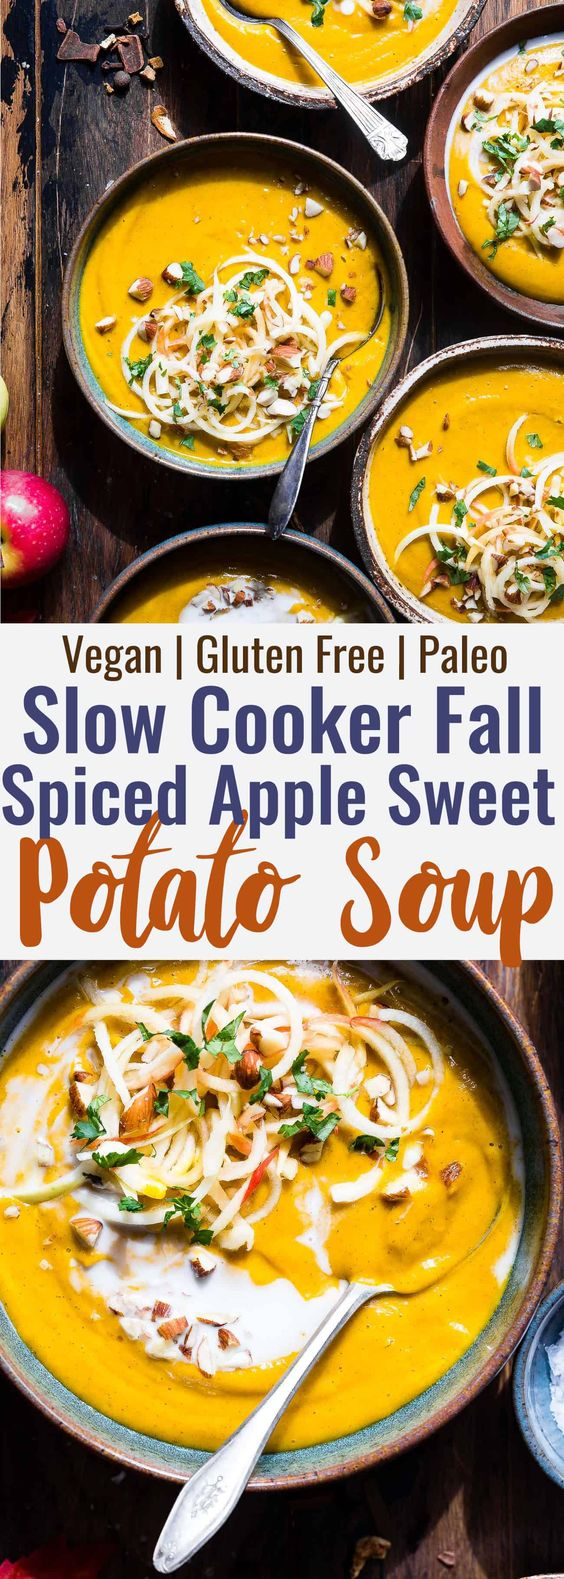 BEST CREAMY HEALTHY FALL VEGAN SWEET POTATO SOUP IN THE SLOW COOKER